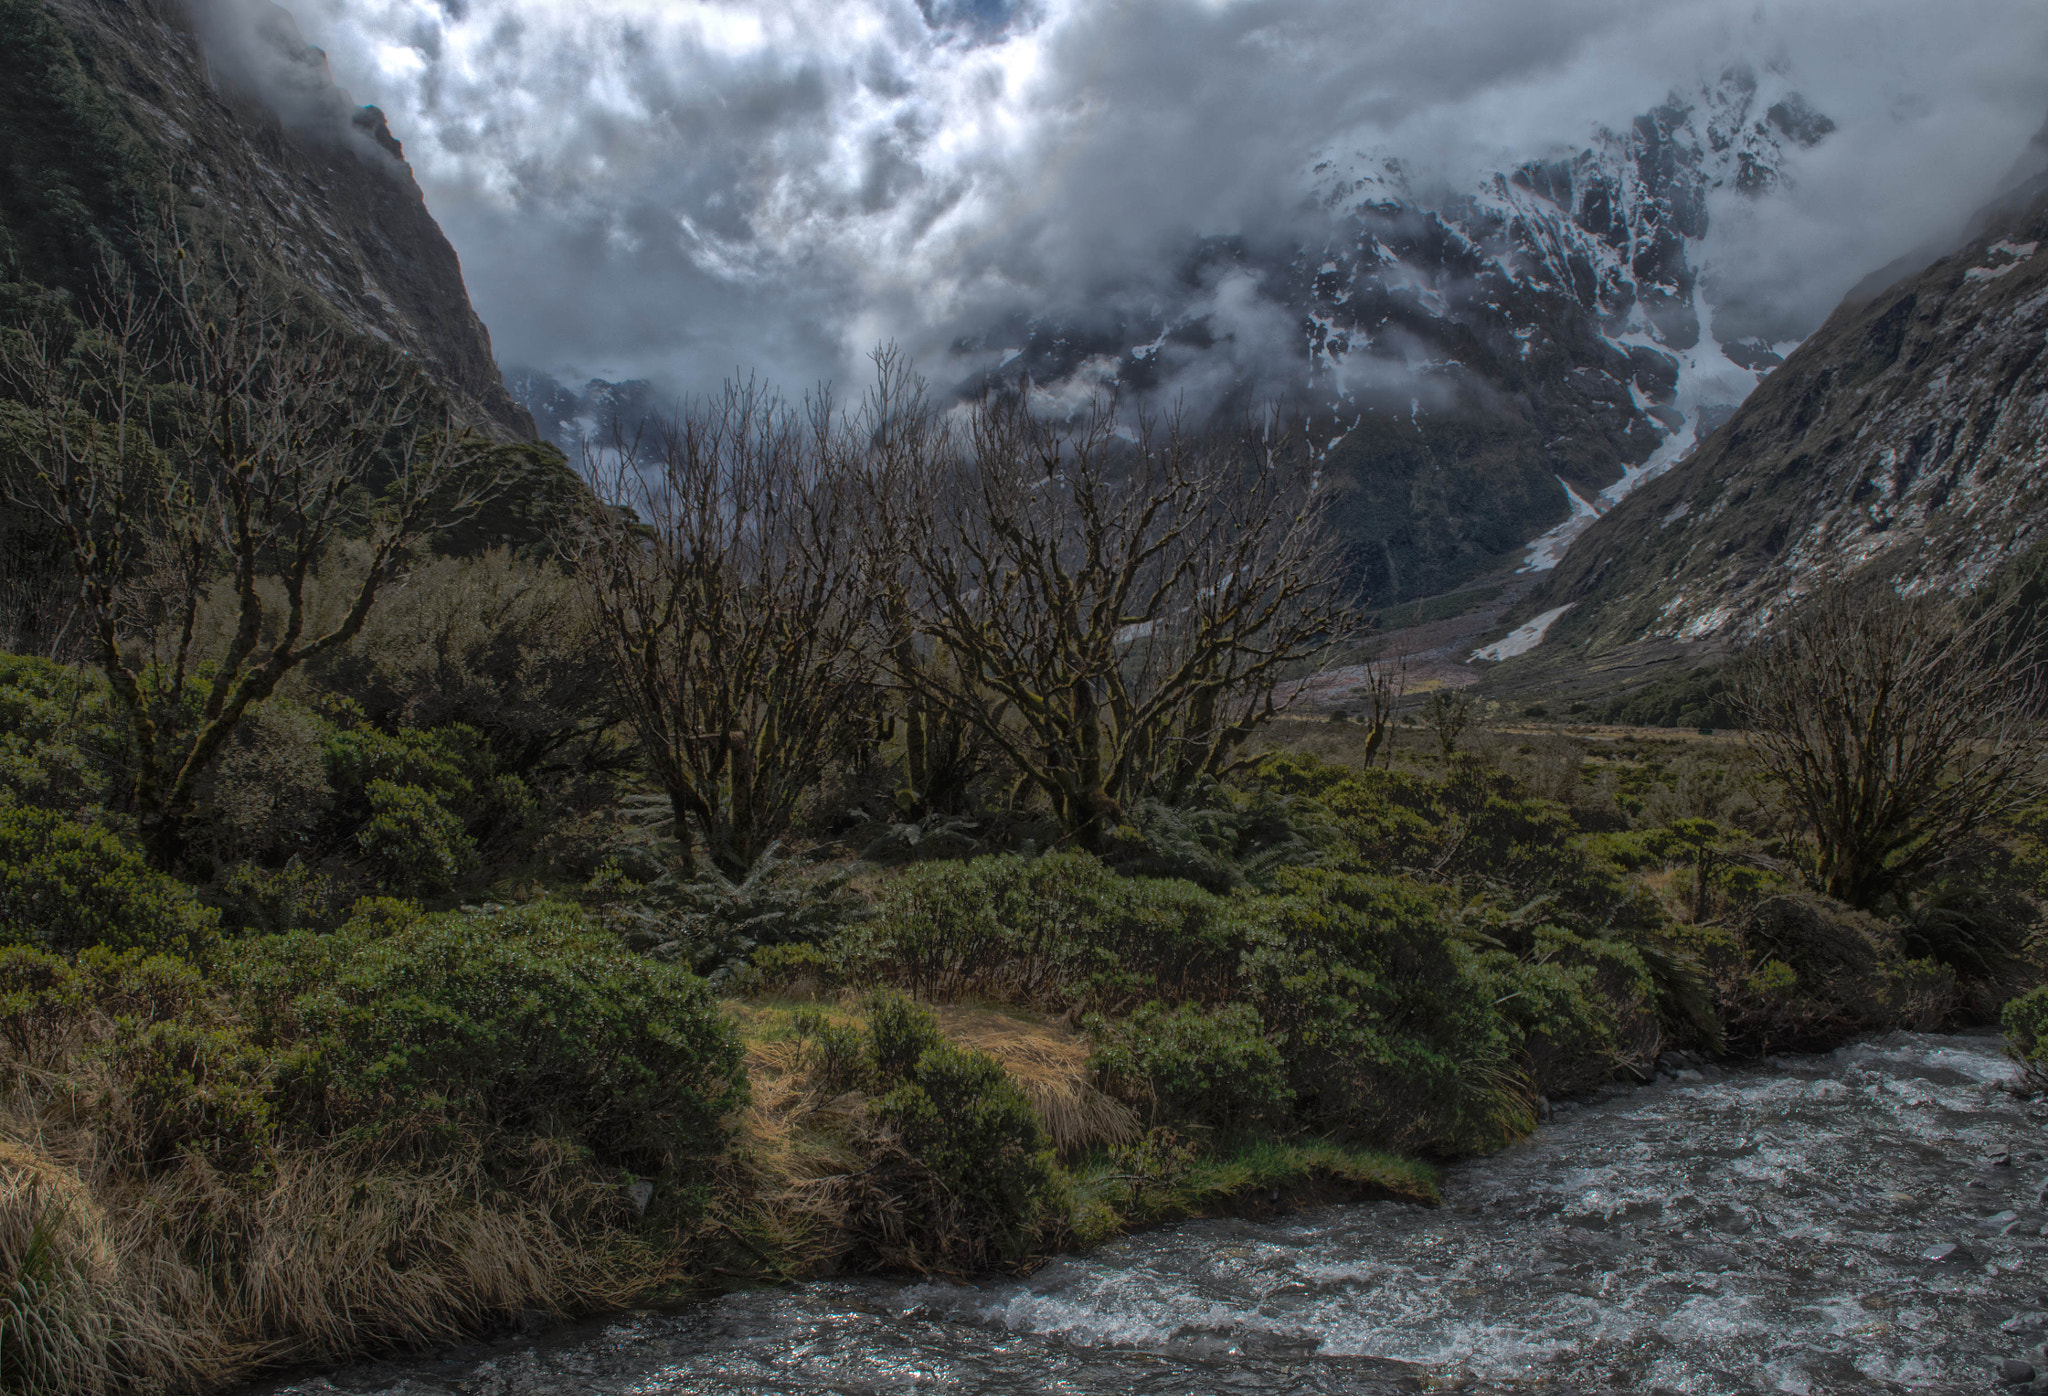 Photograph Glacial River, Fiordland, New Zealand by victorw2 on 500px